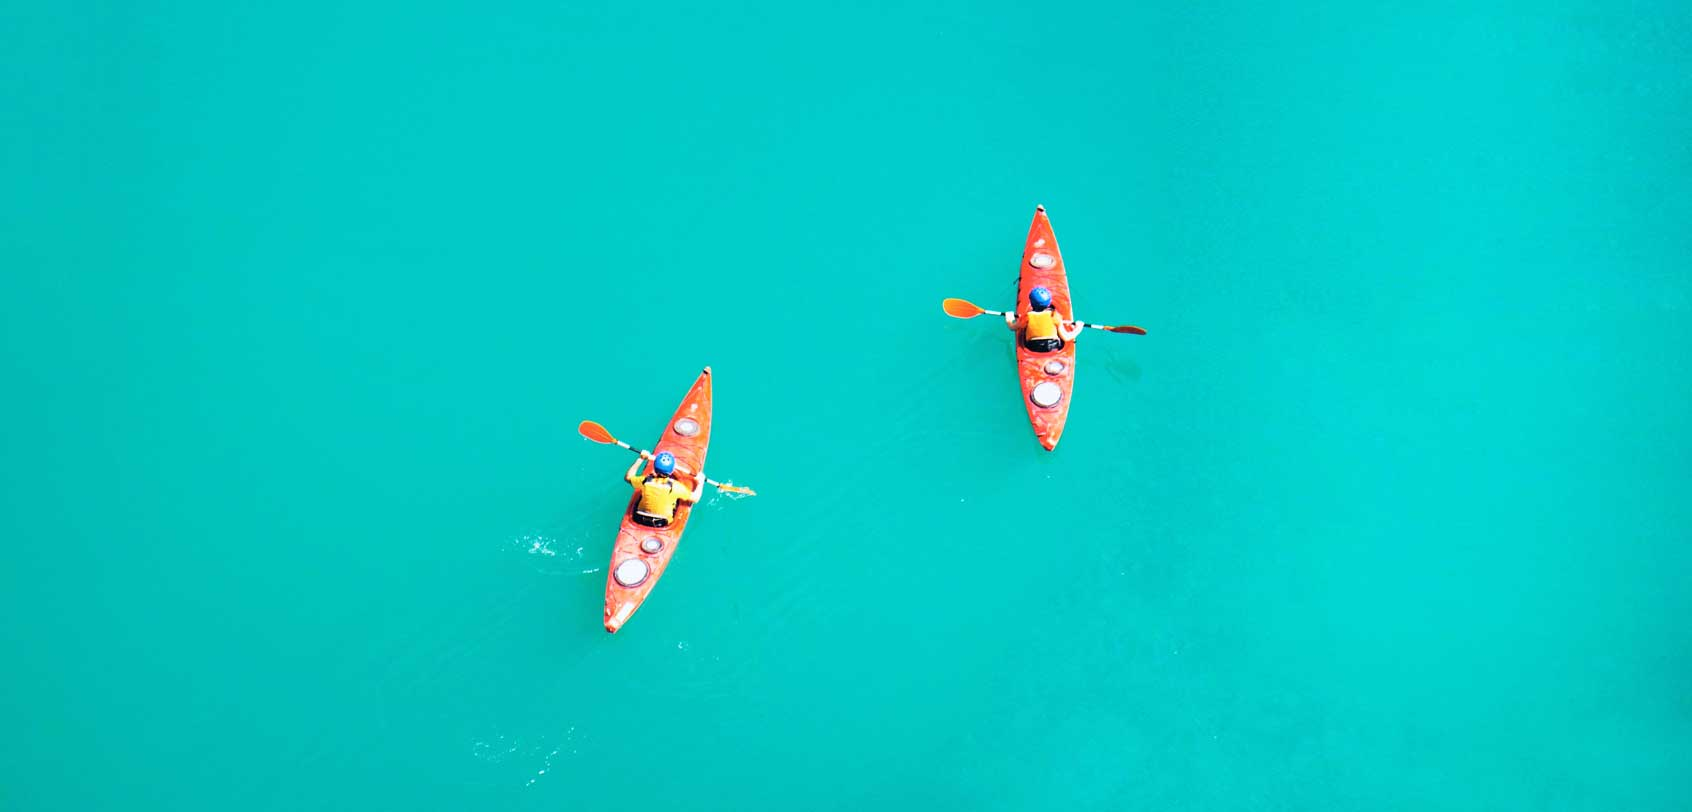 kayaking-new-zealand-things-to-do-in-nor